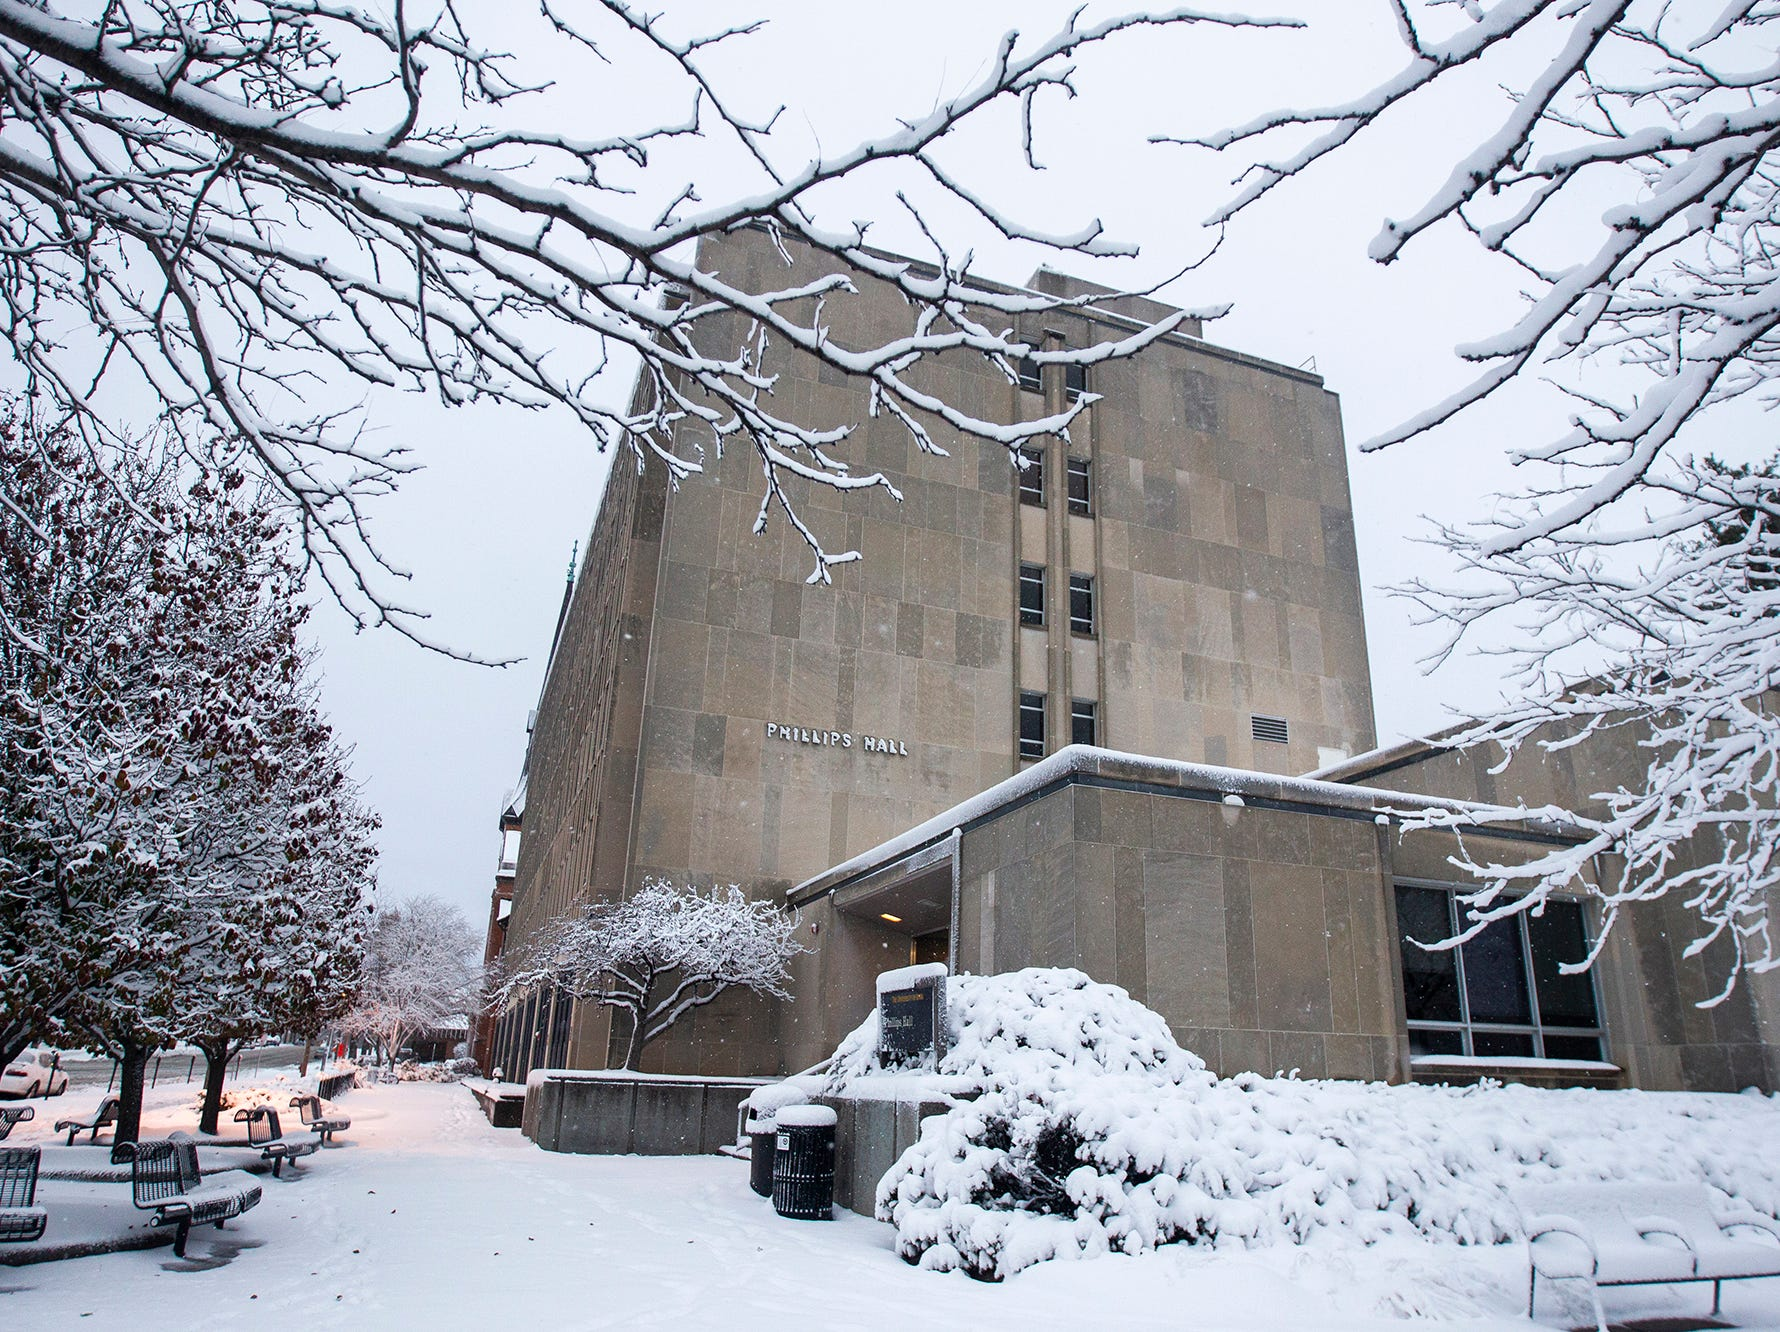 Snow falls on Phillips Hall during a storm on Sunday, Nov. 25, 2018, in Iowa City.